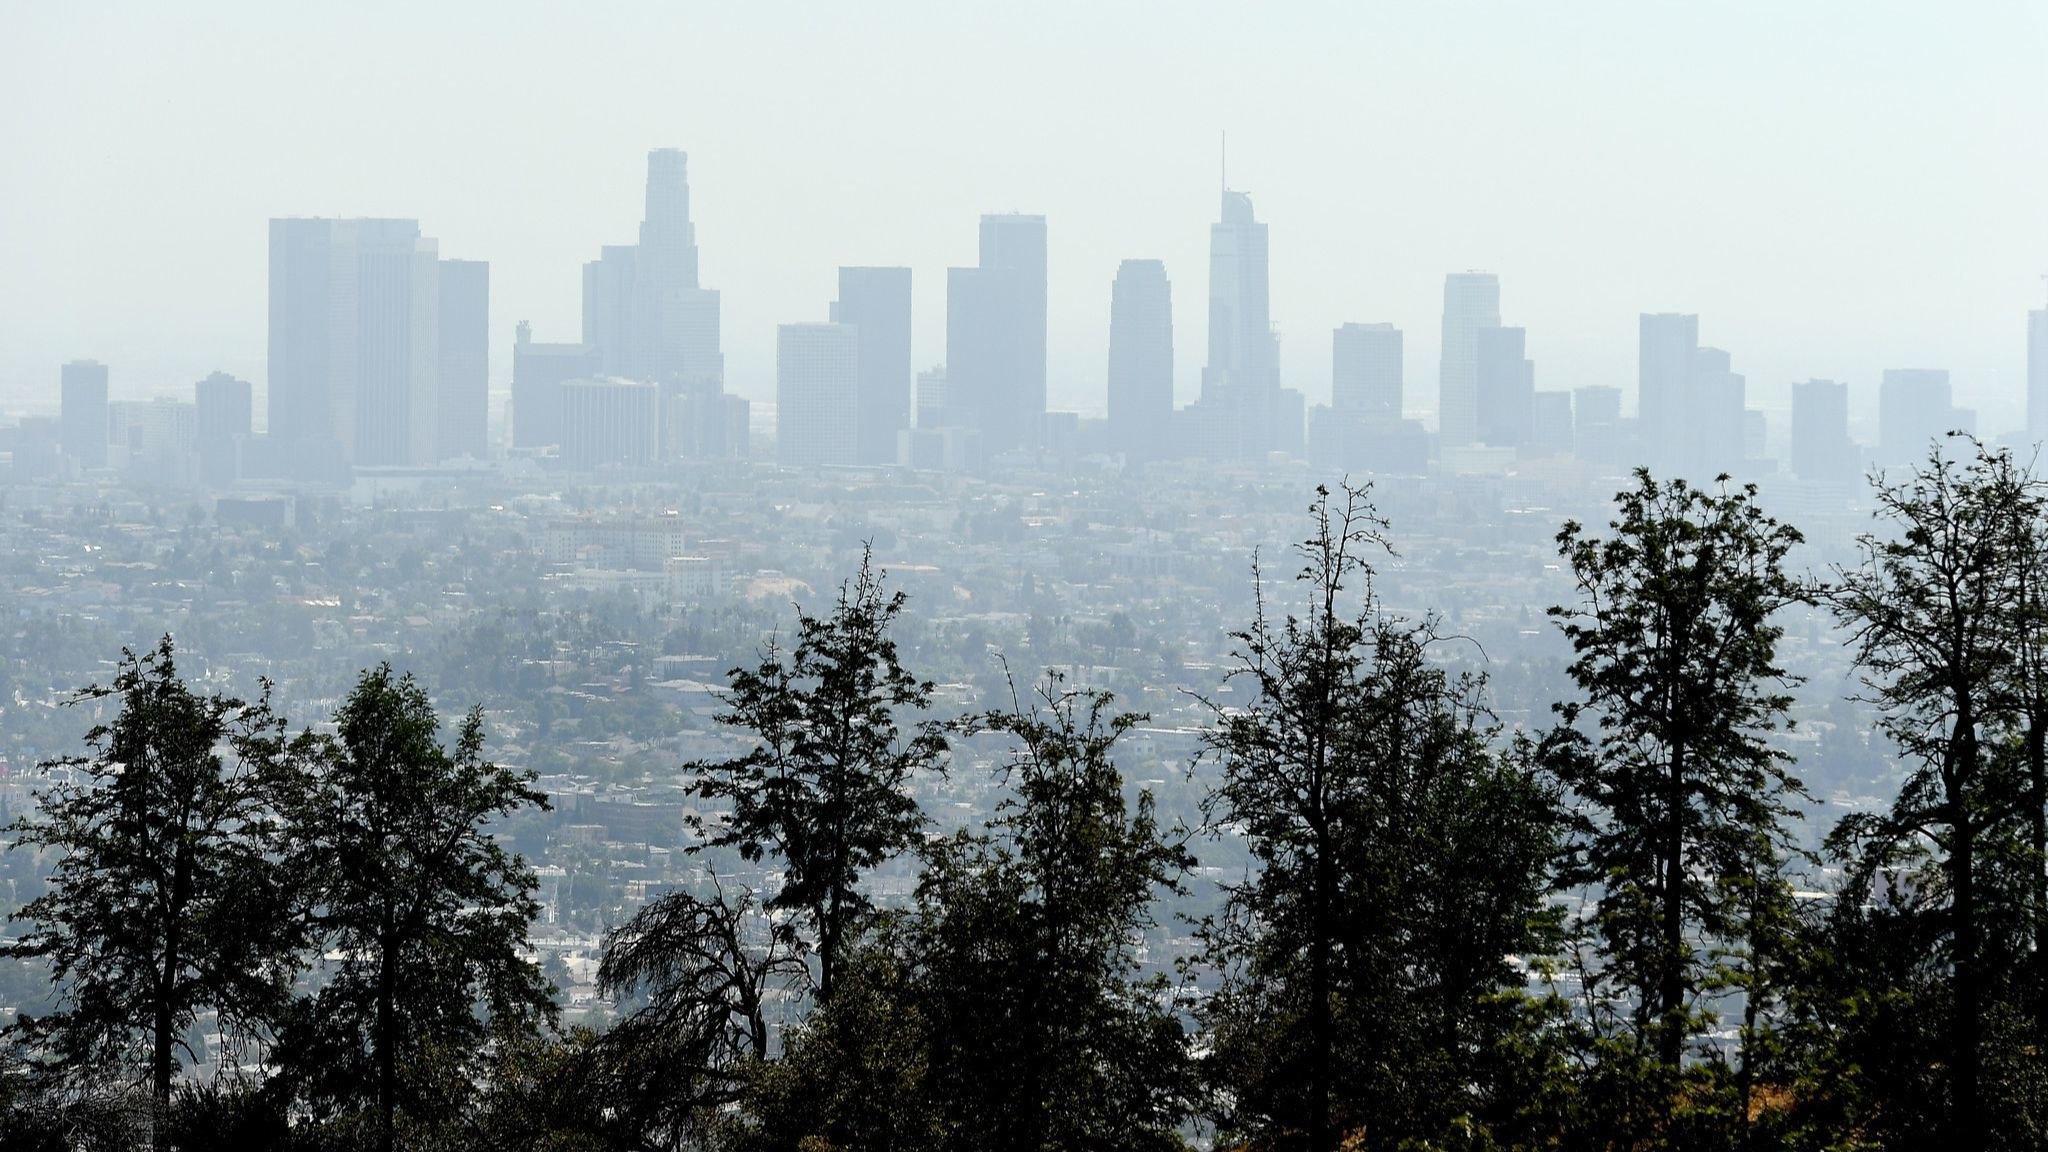 87 days of smog: Southern California just saw its longest streak of bad air in decades | Los Angeles Times